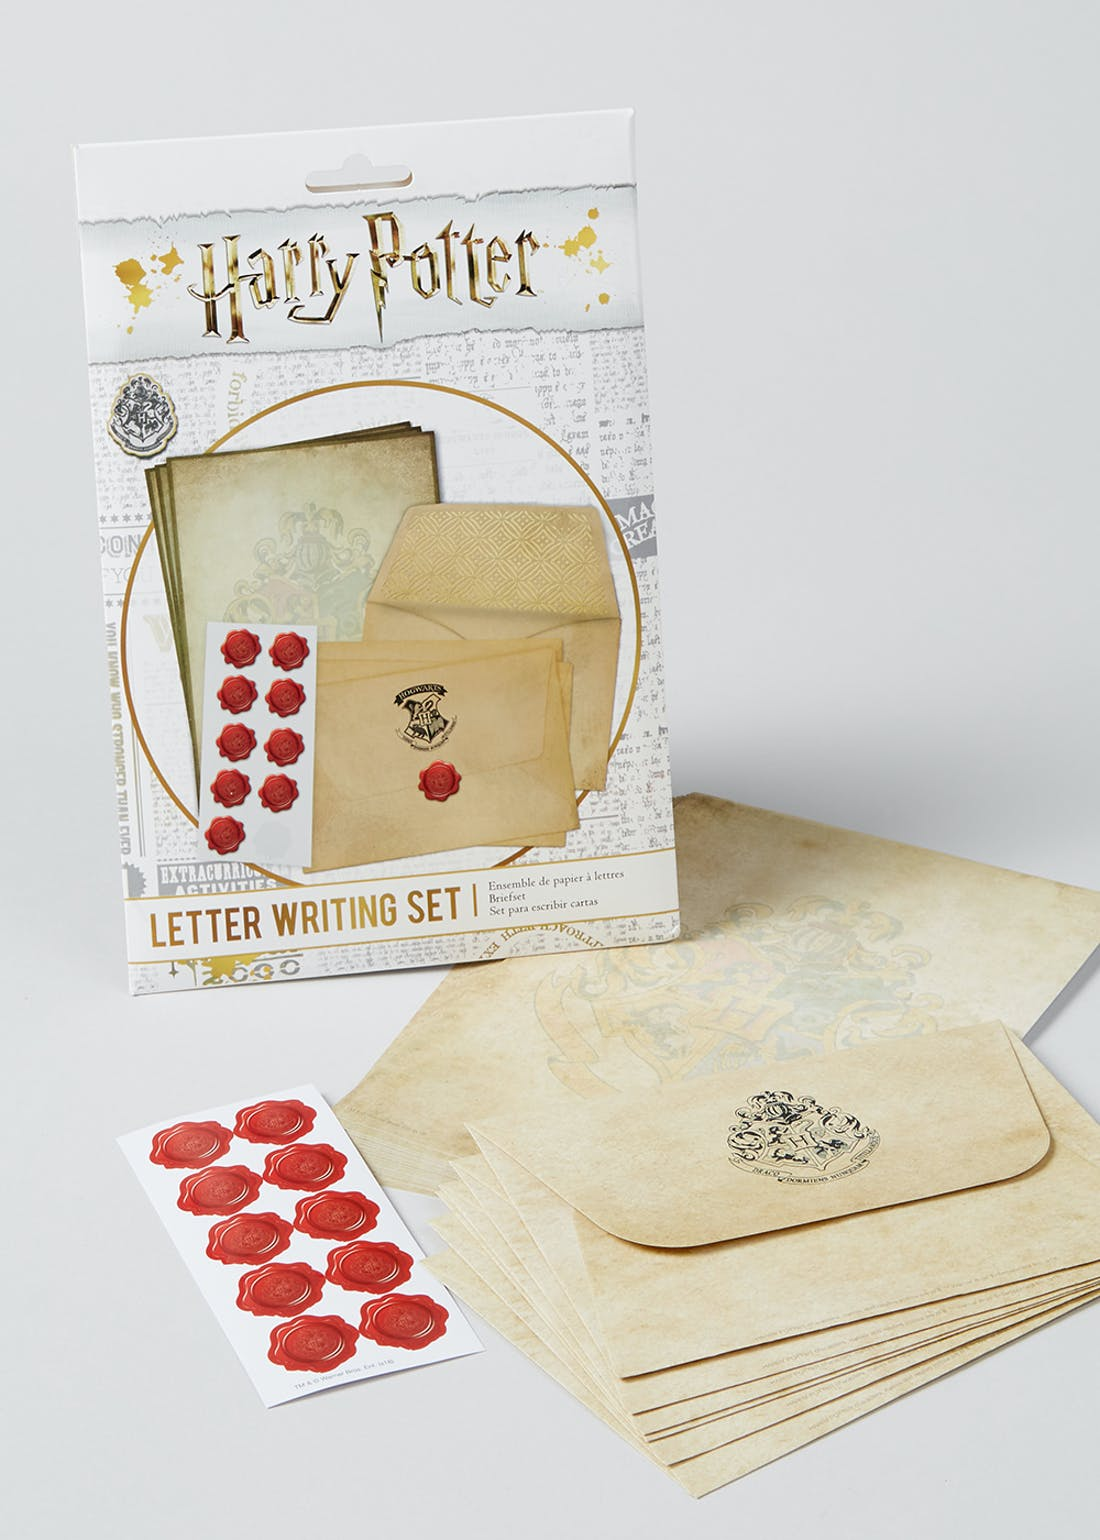 Harry Potter Letter Writing Set (24cm x 16cm)